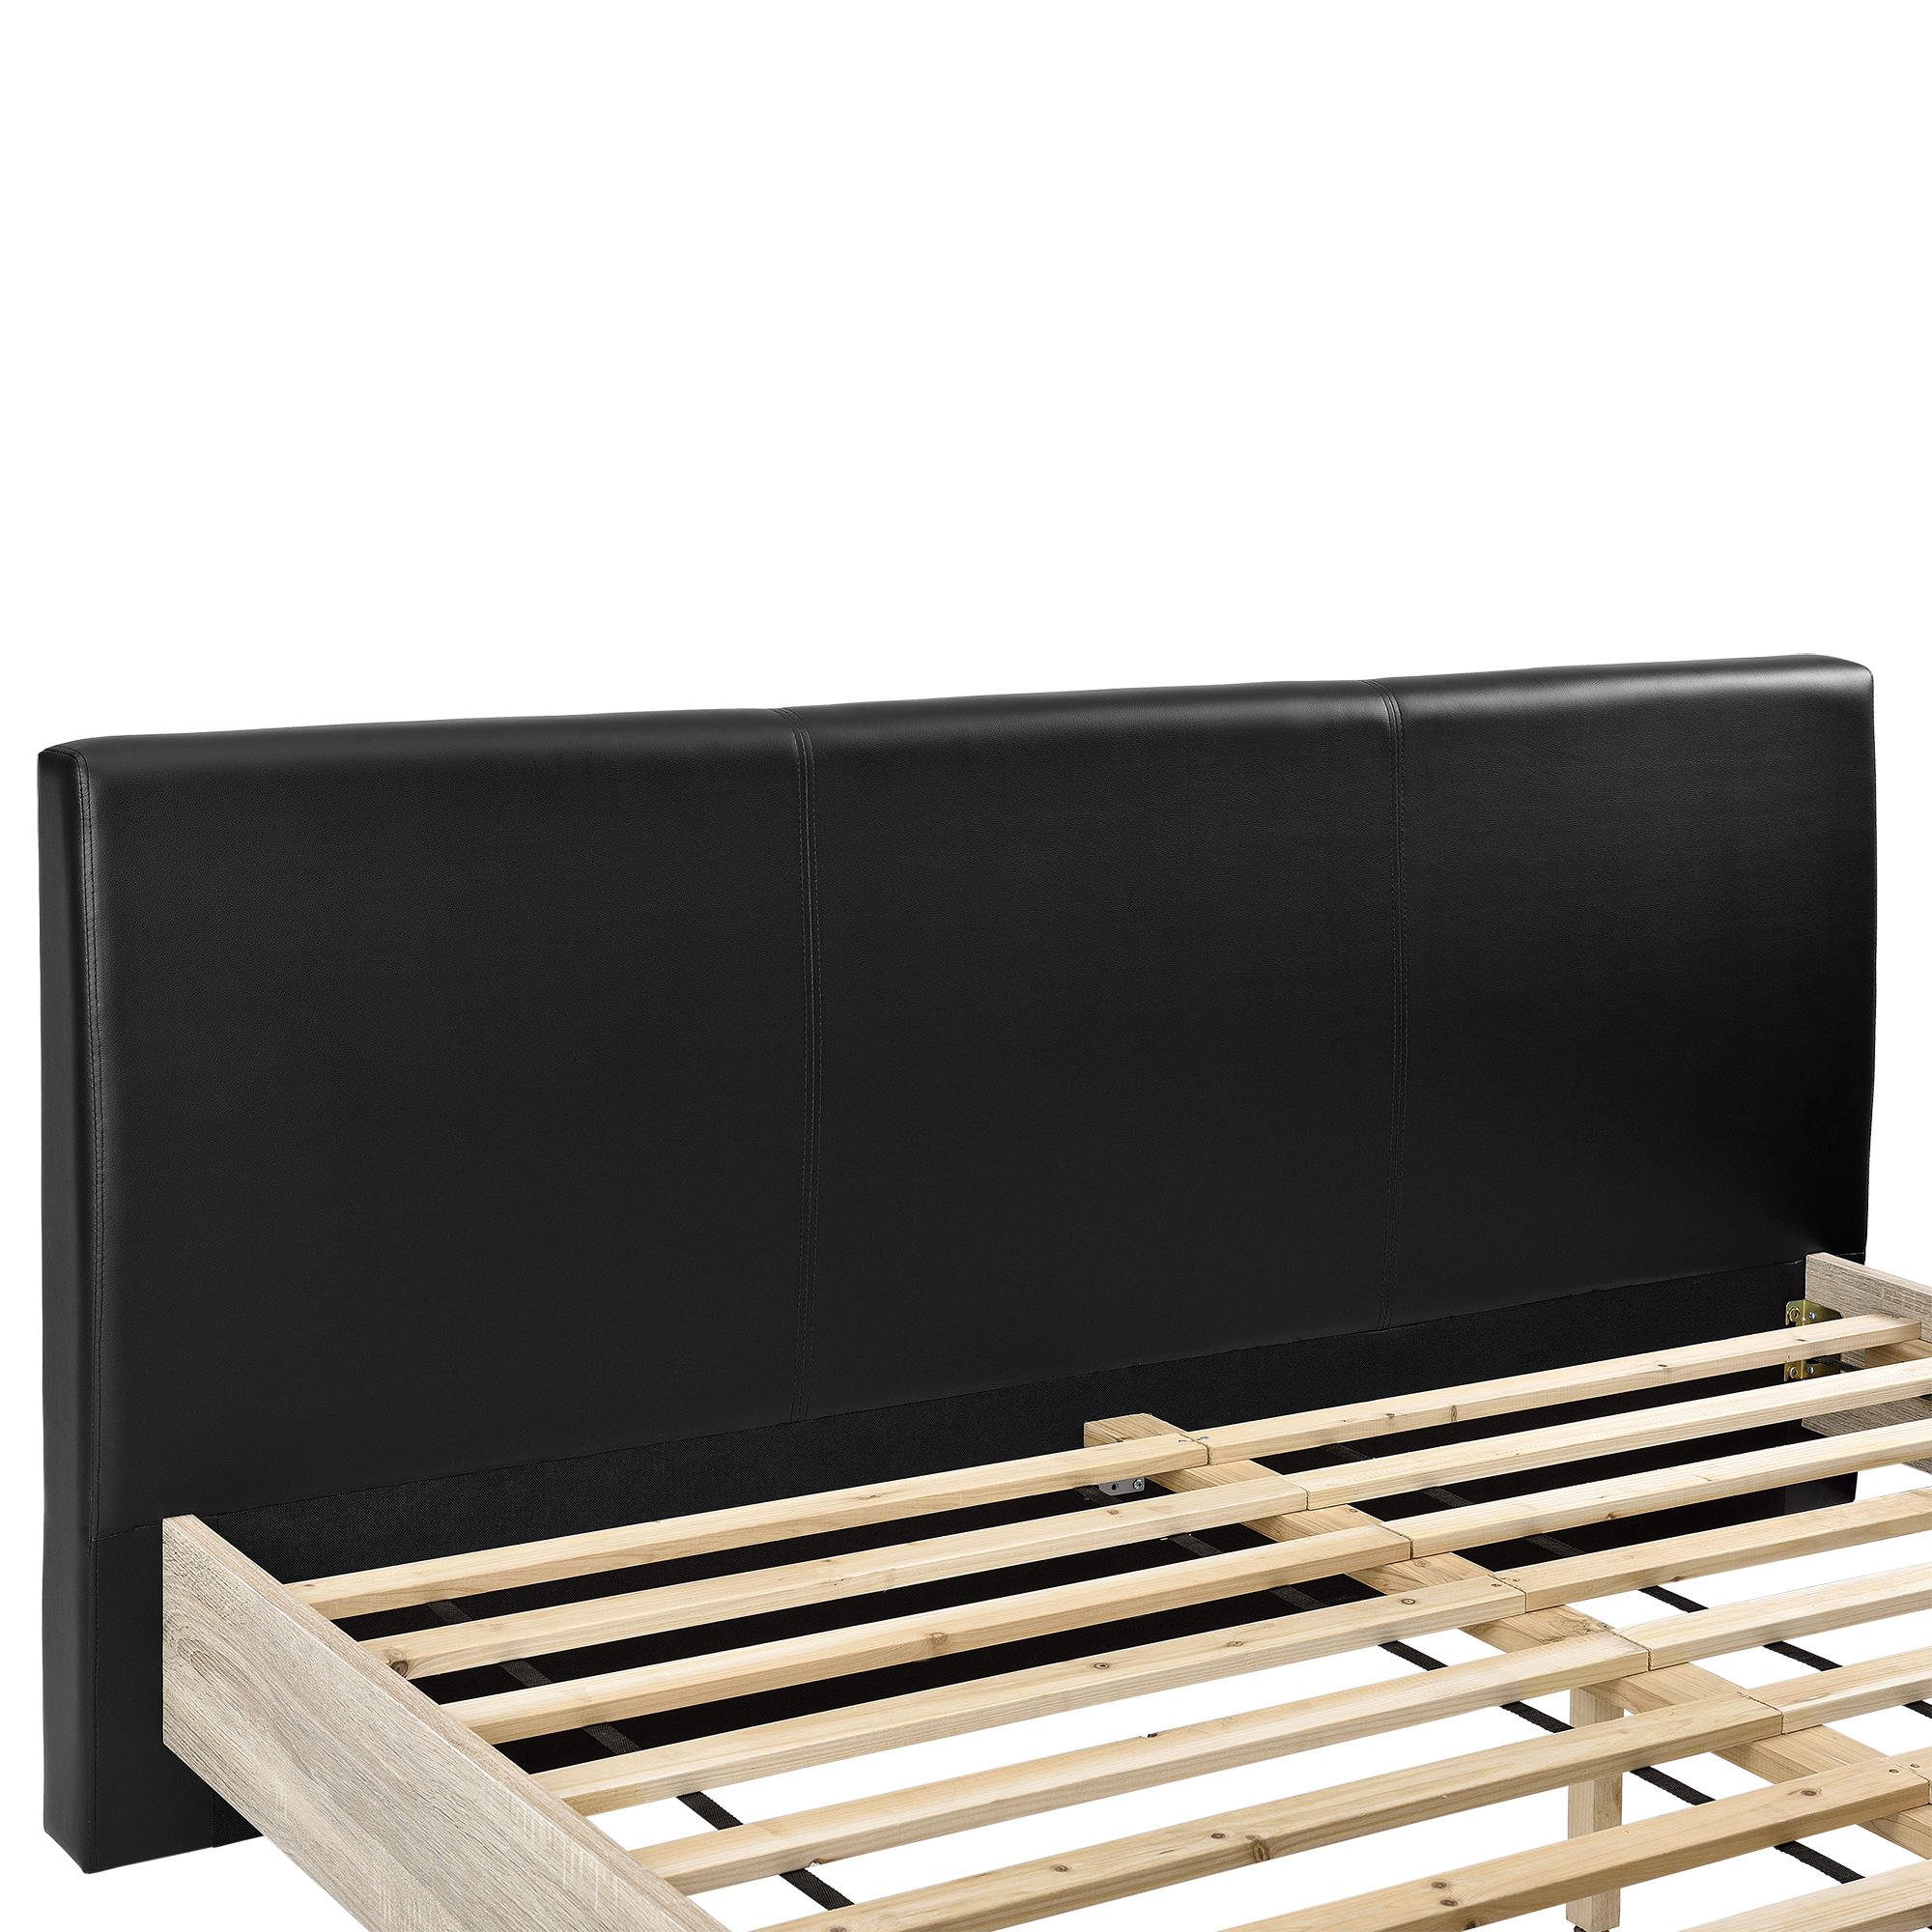 polsterbett 140 180 x 200cm bett bettgestell doppelbett ehebett holz ebay. Black Bedroom Furniture Sets. Home Design Ideas